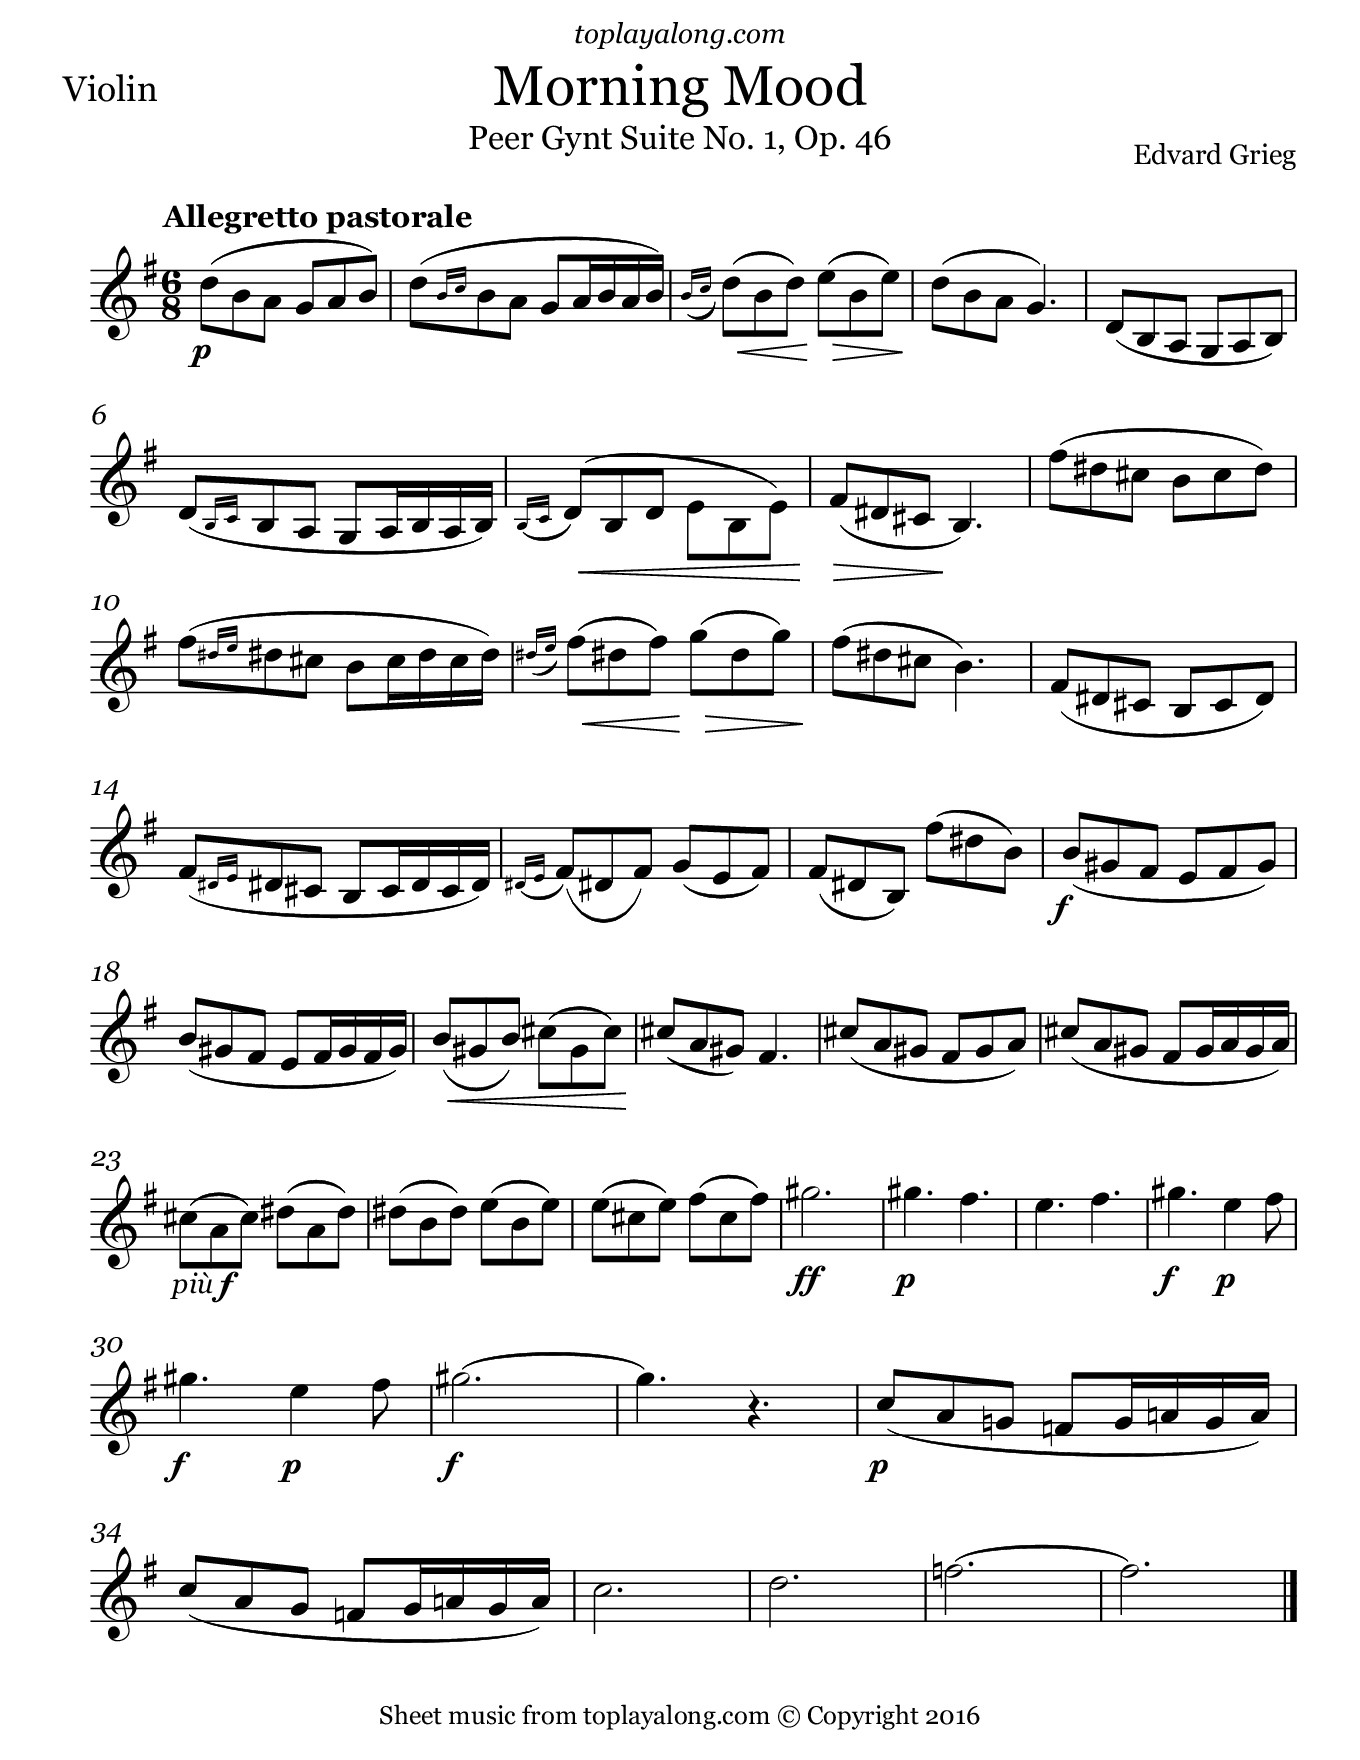 Morning Mood from Peer Gynt by Grieg. Sheet music for Violin, page 1.